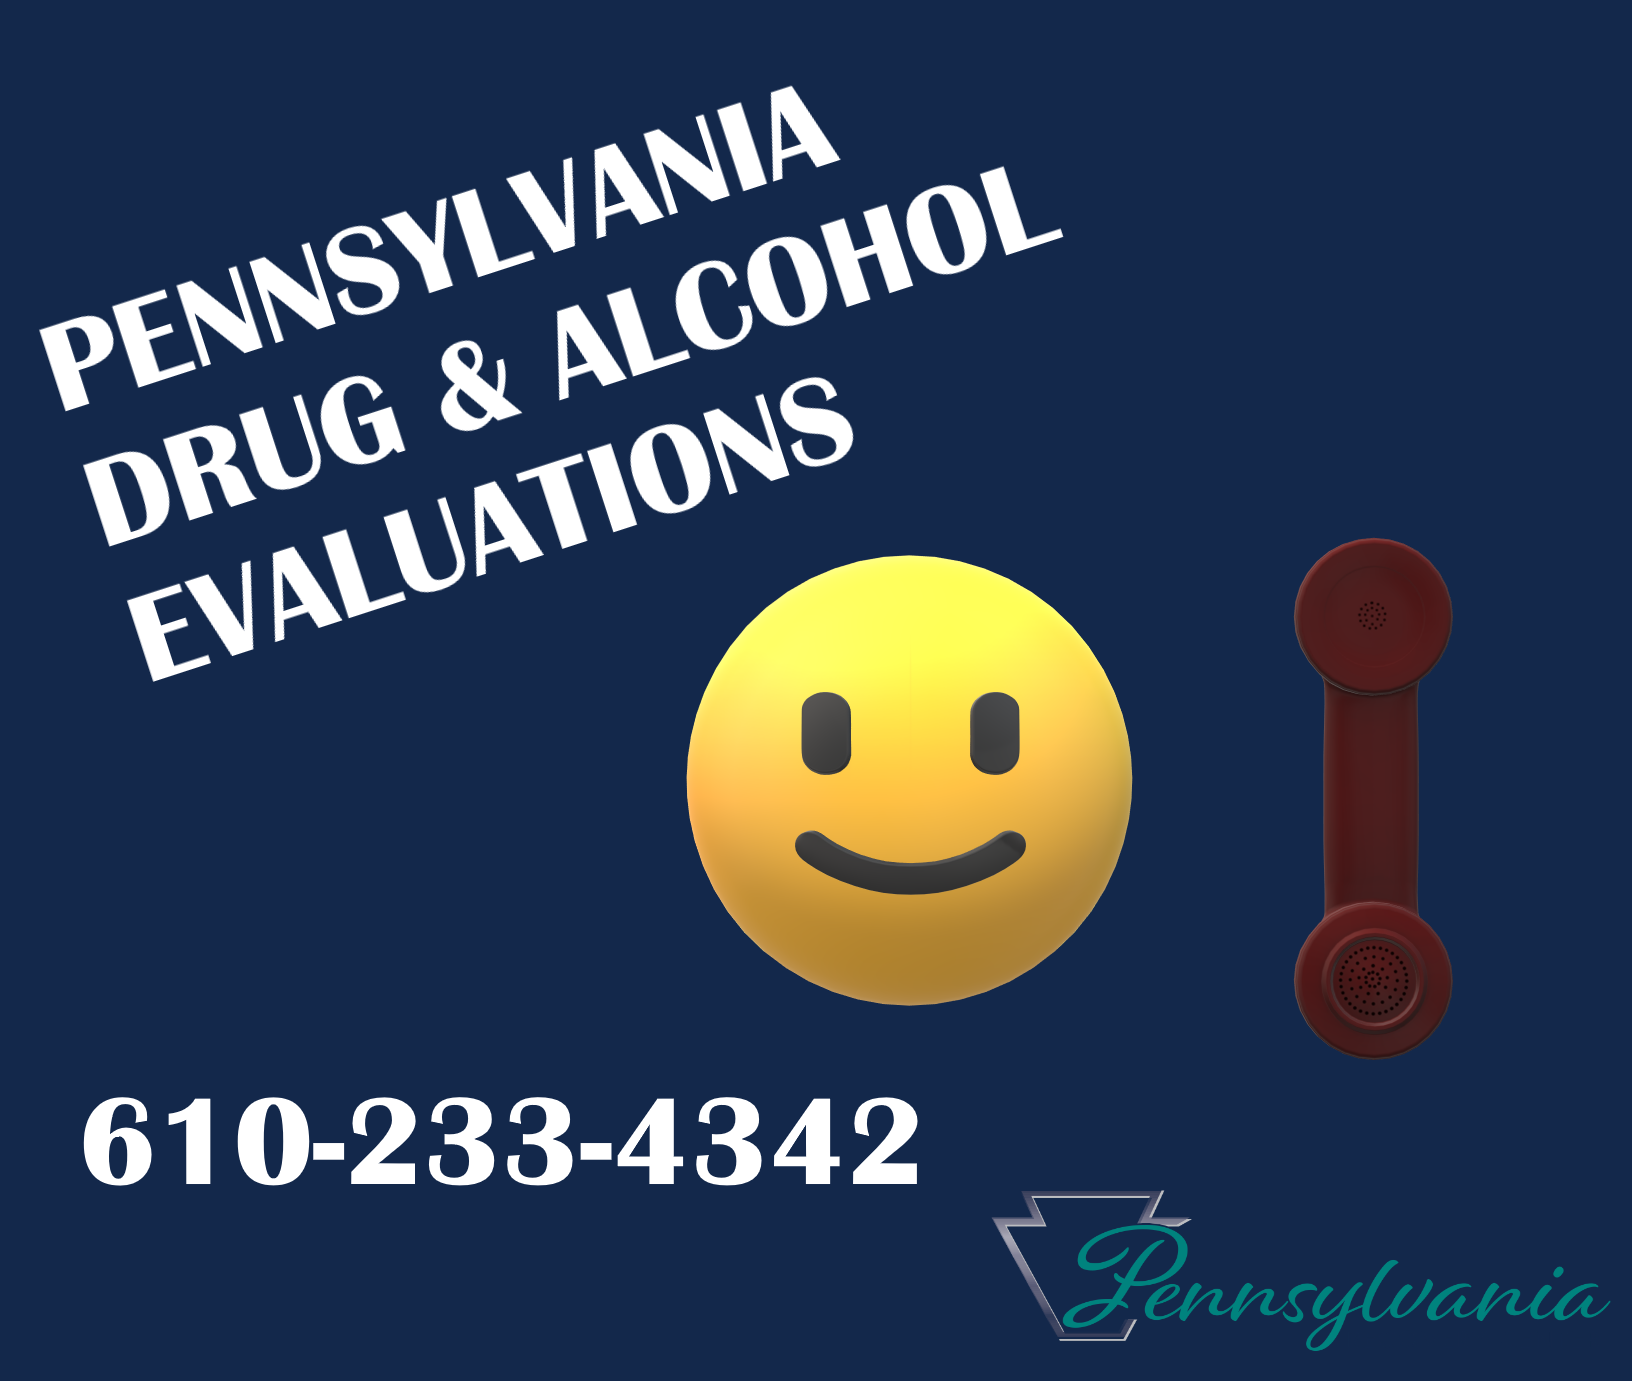 pennsylvania drug and alcohol evaluations chester county bucks county delaware county montgomery county